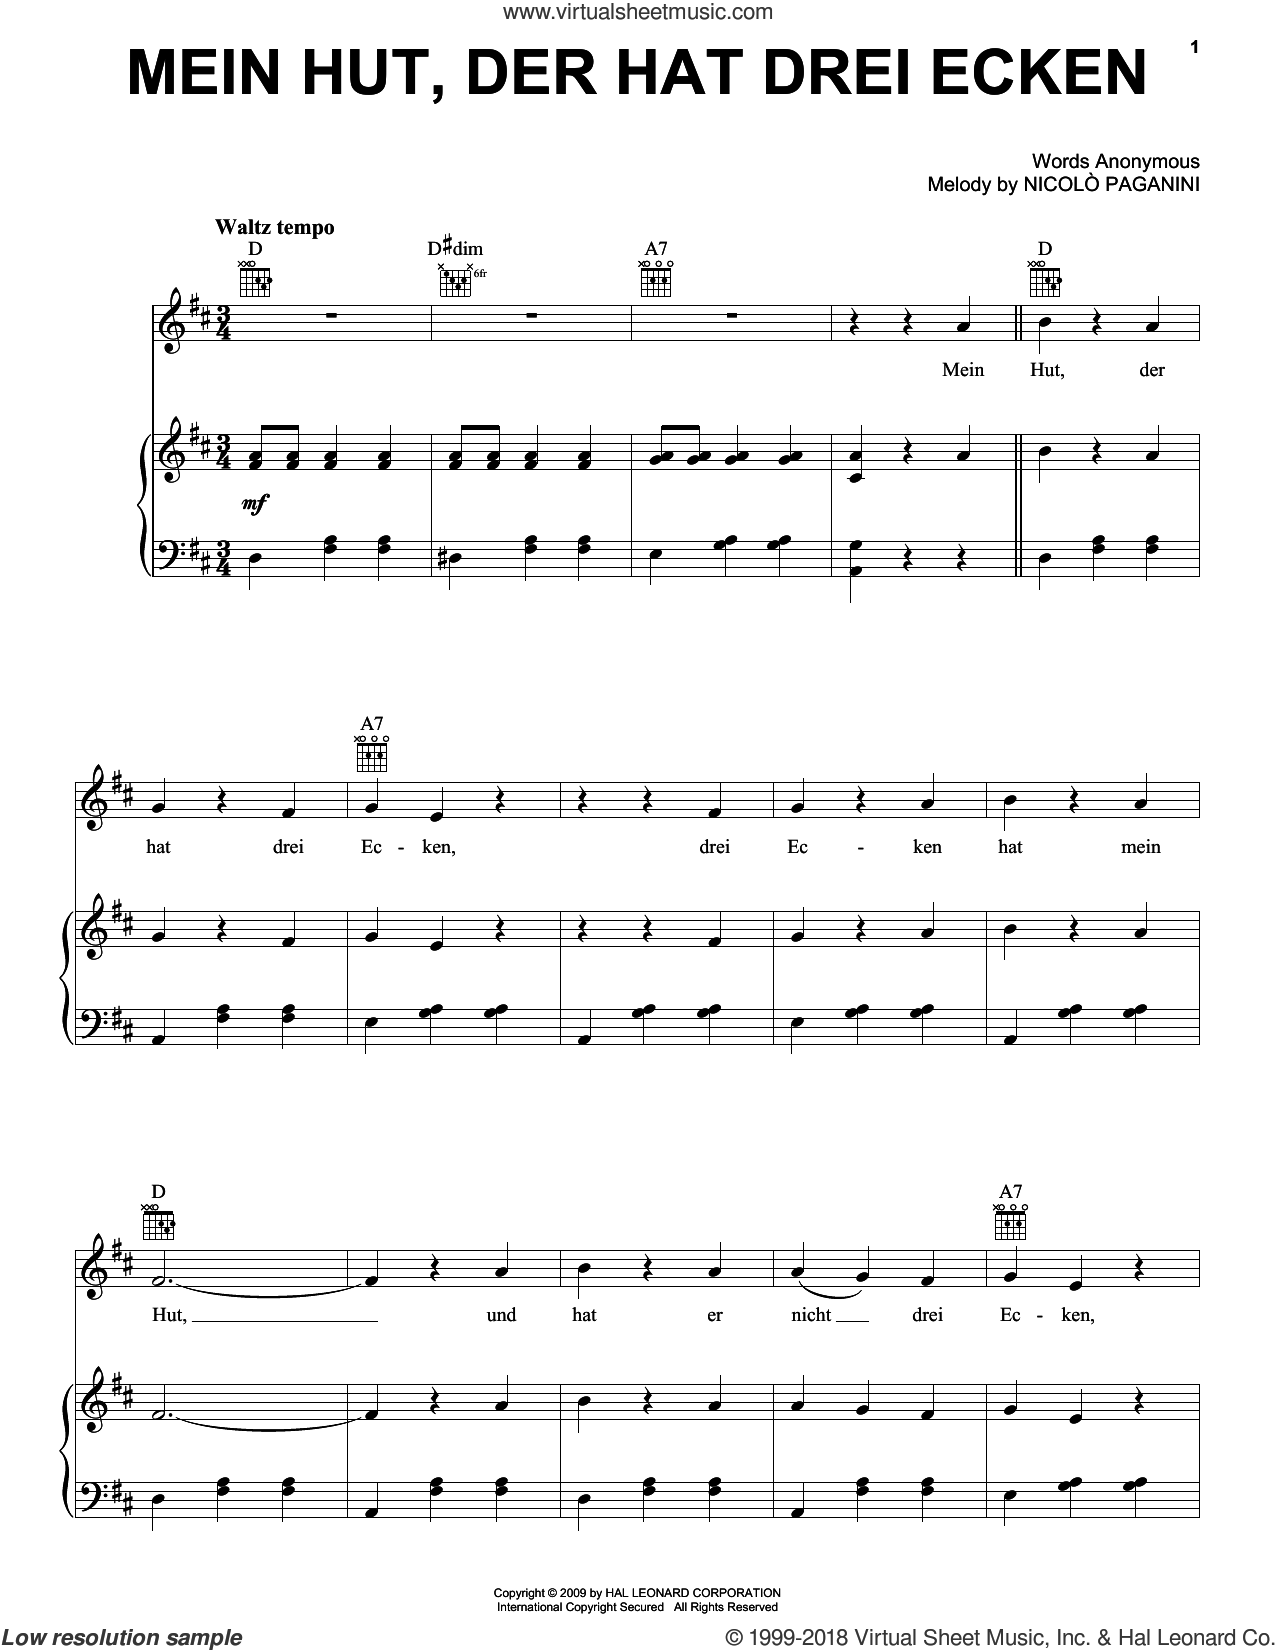 Mein Hut, Der Hat Drei Ecken sheet music for voice, piano or guitar by Nicolo Paganini, intermediate skill level